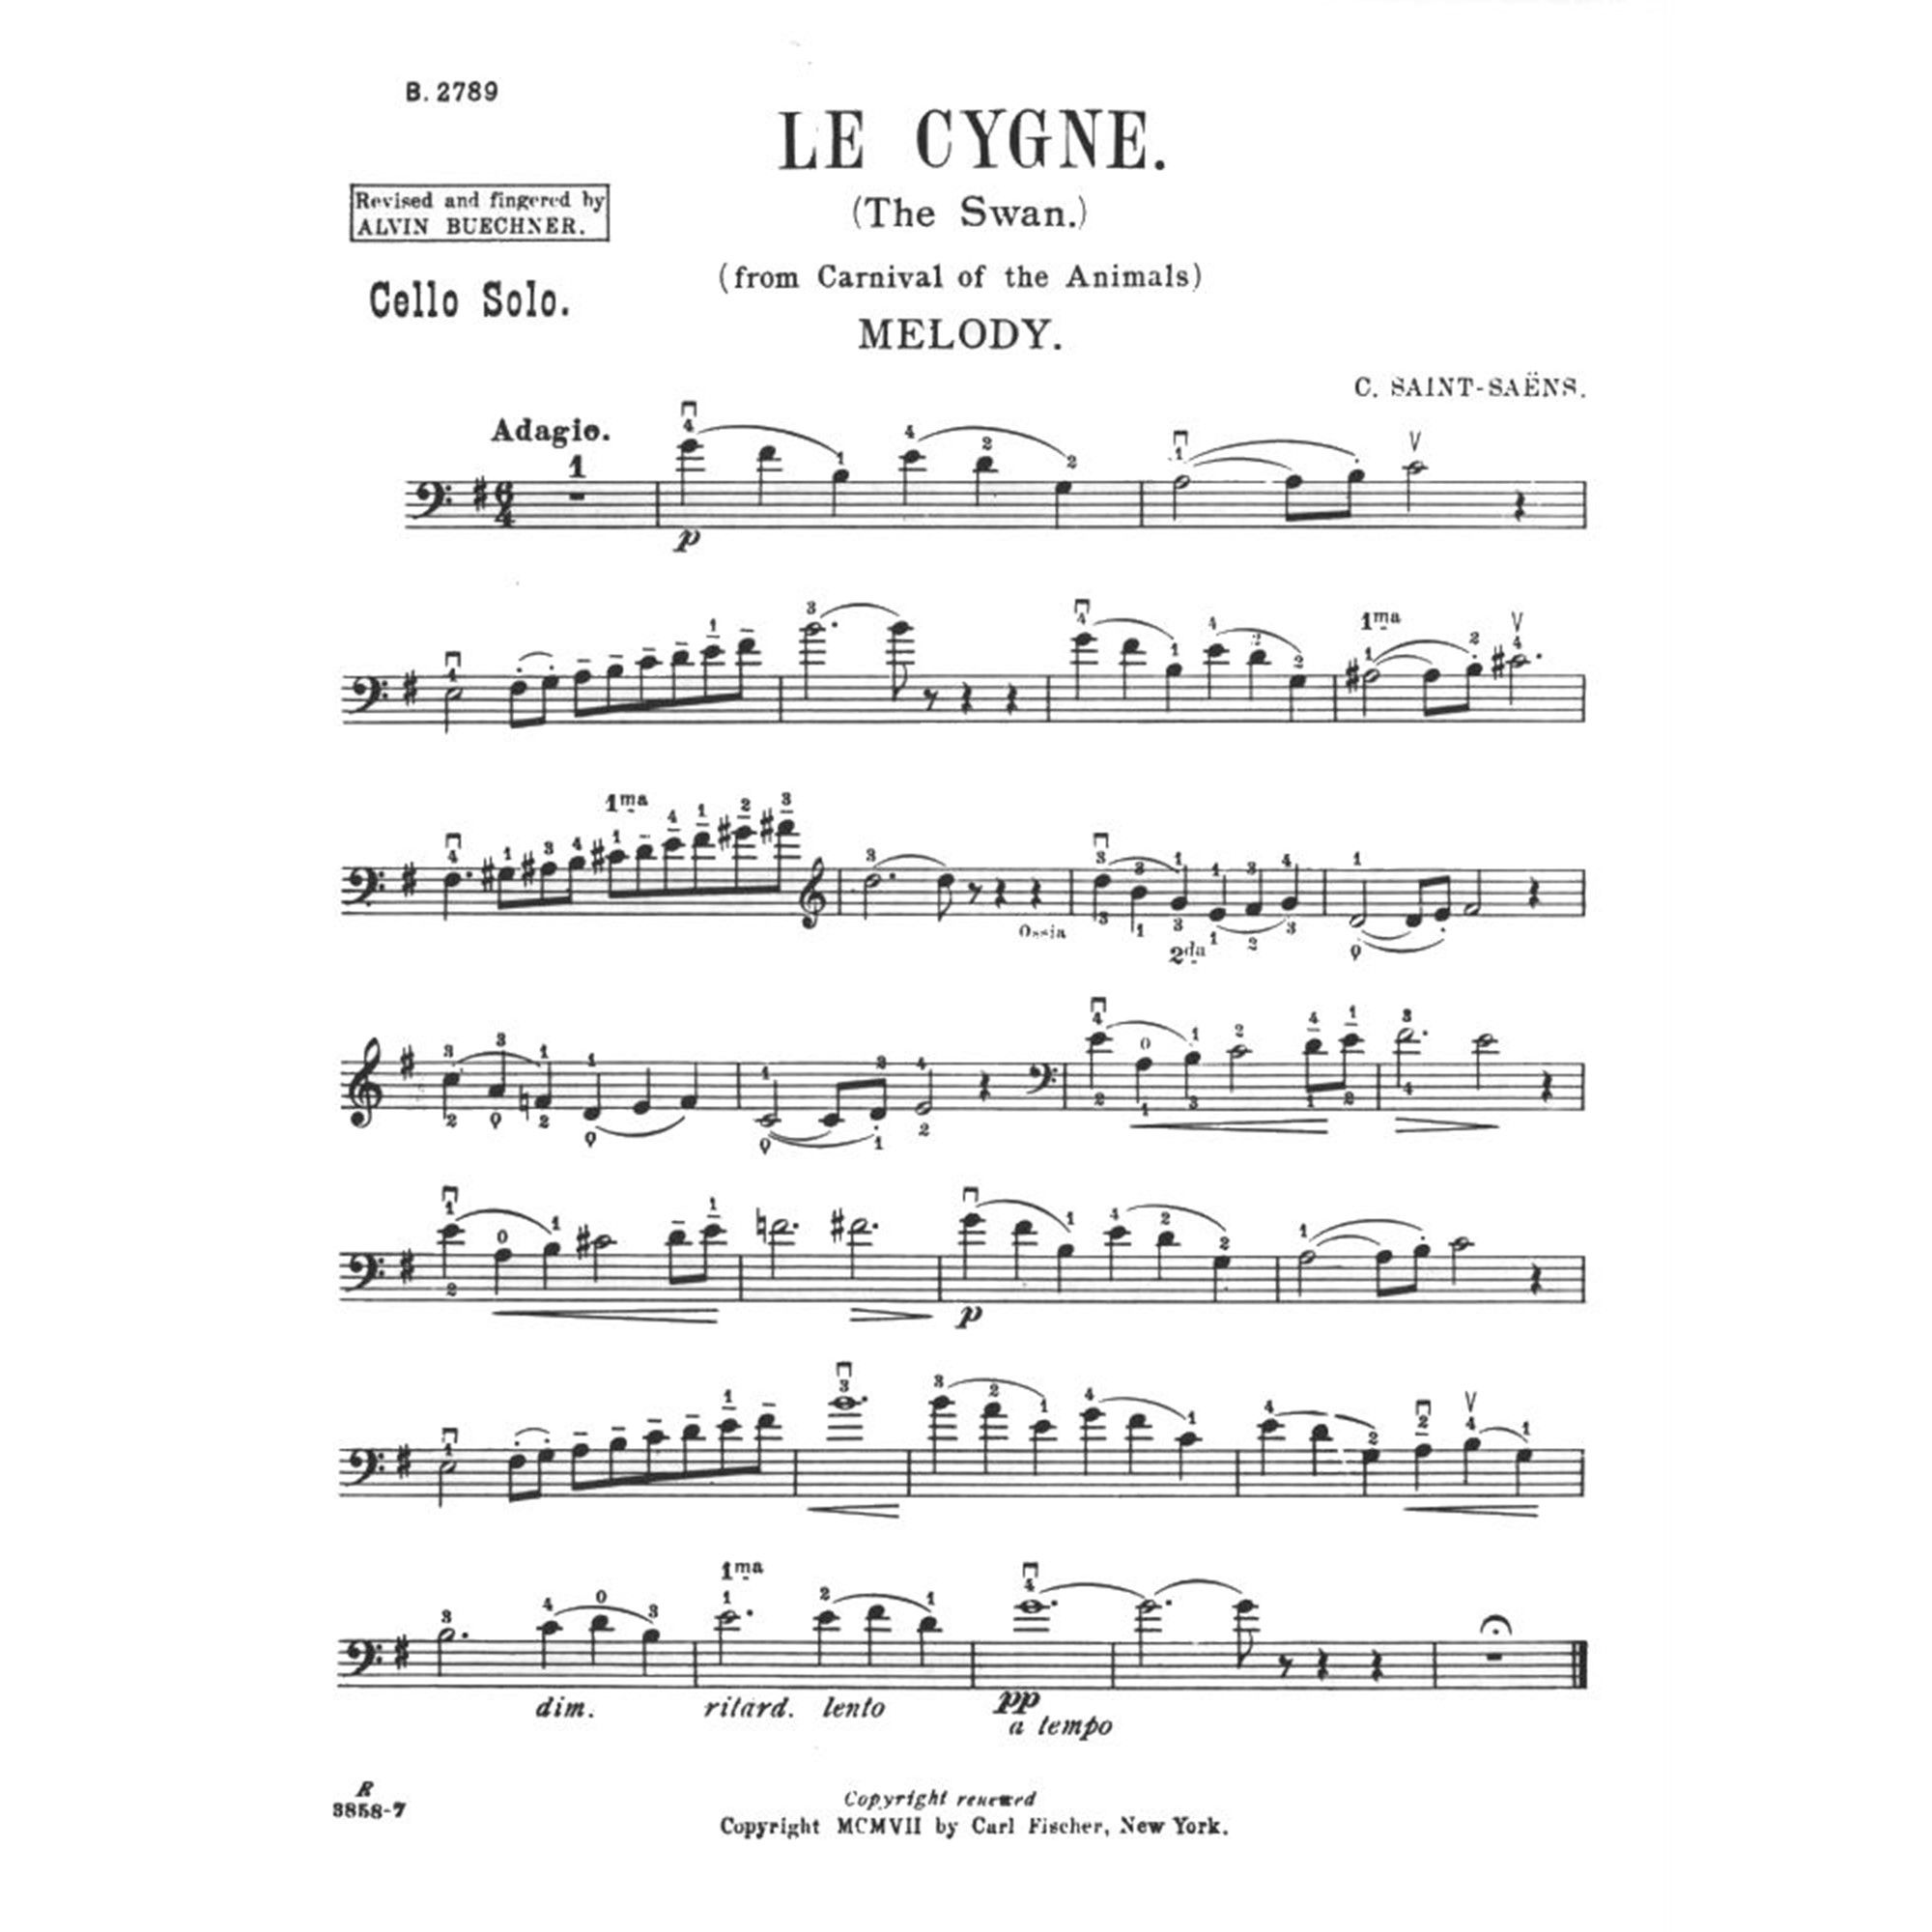 Saint-Saens, Camille - The Swan from